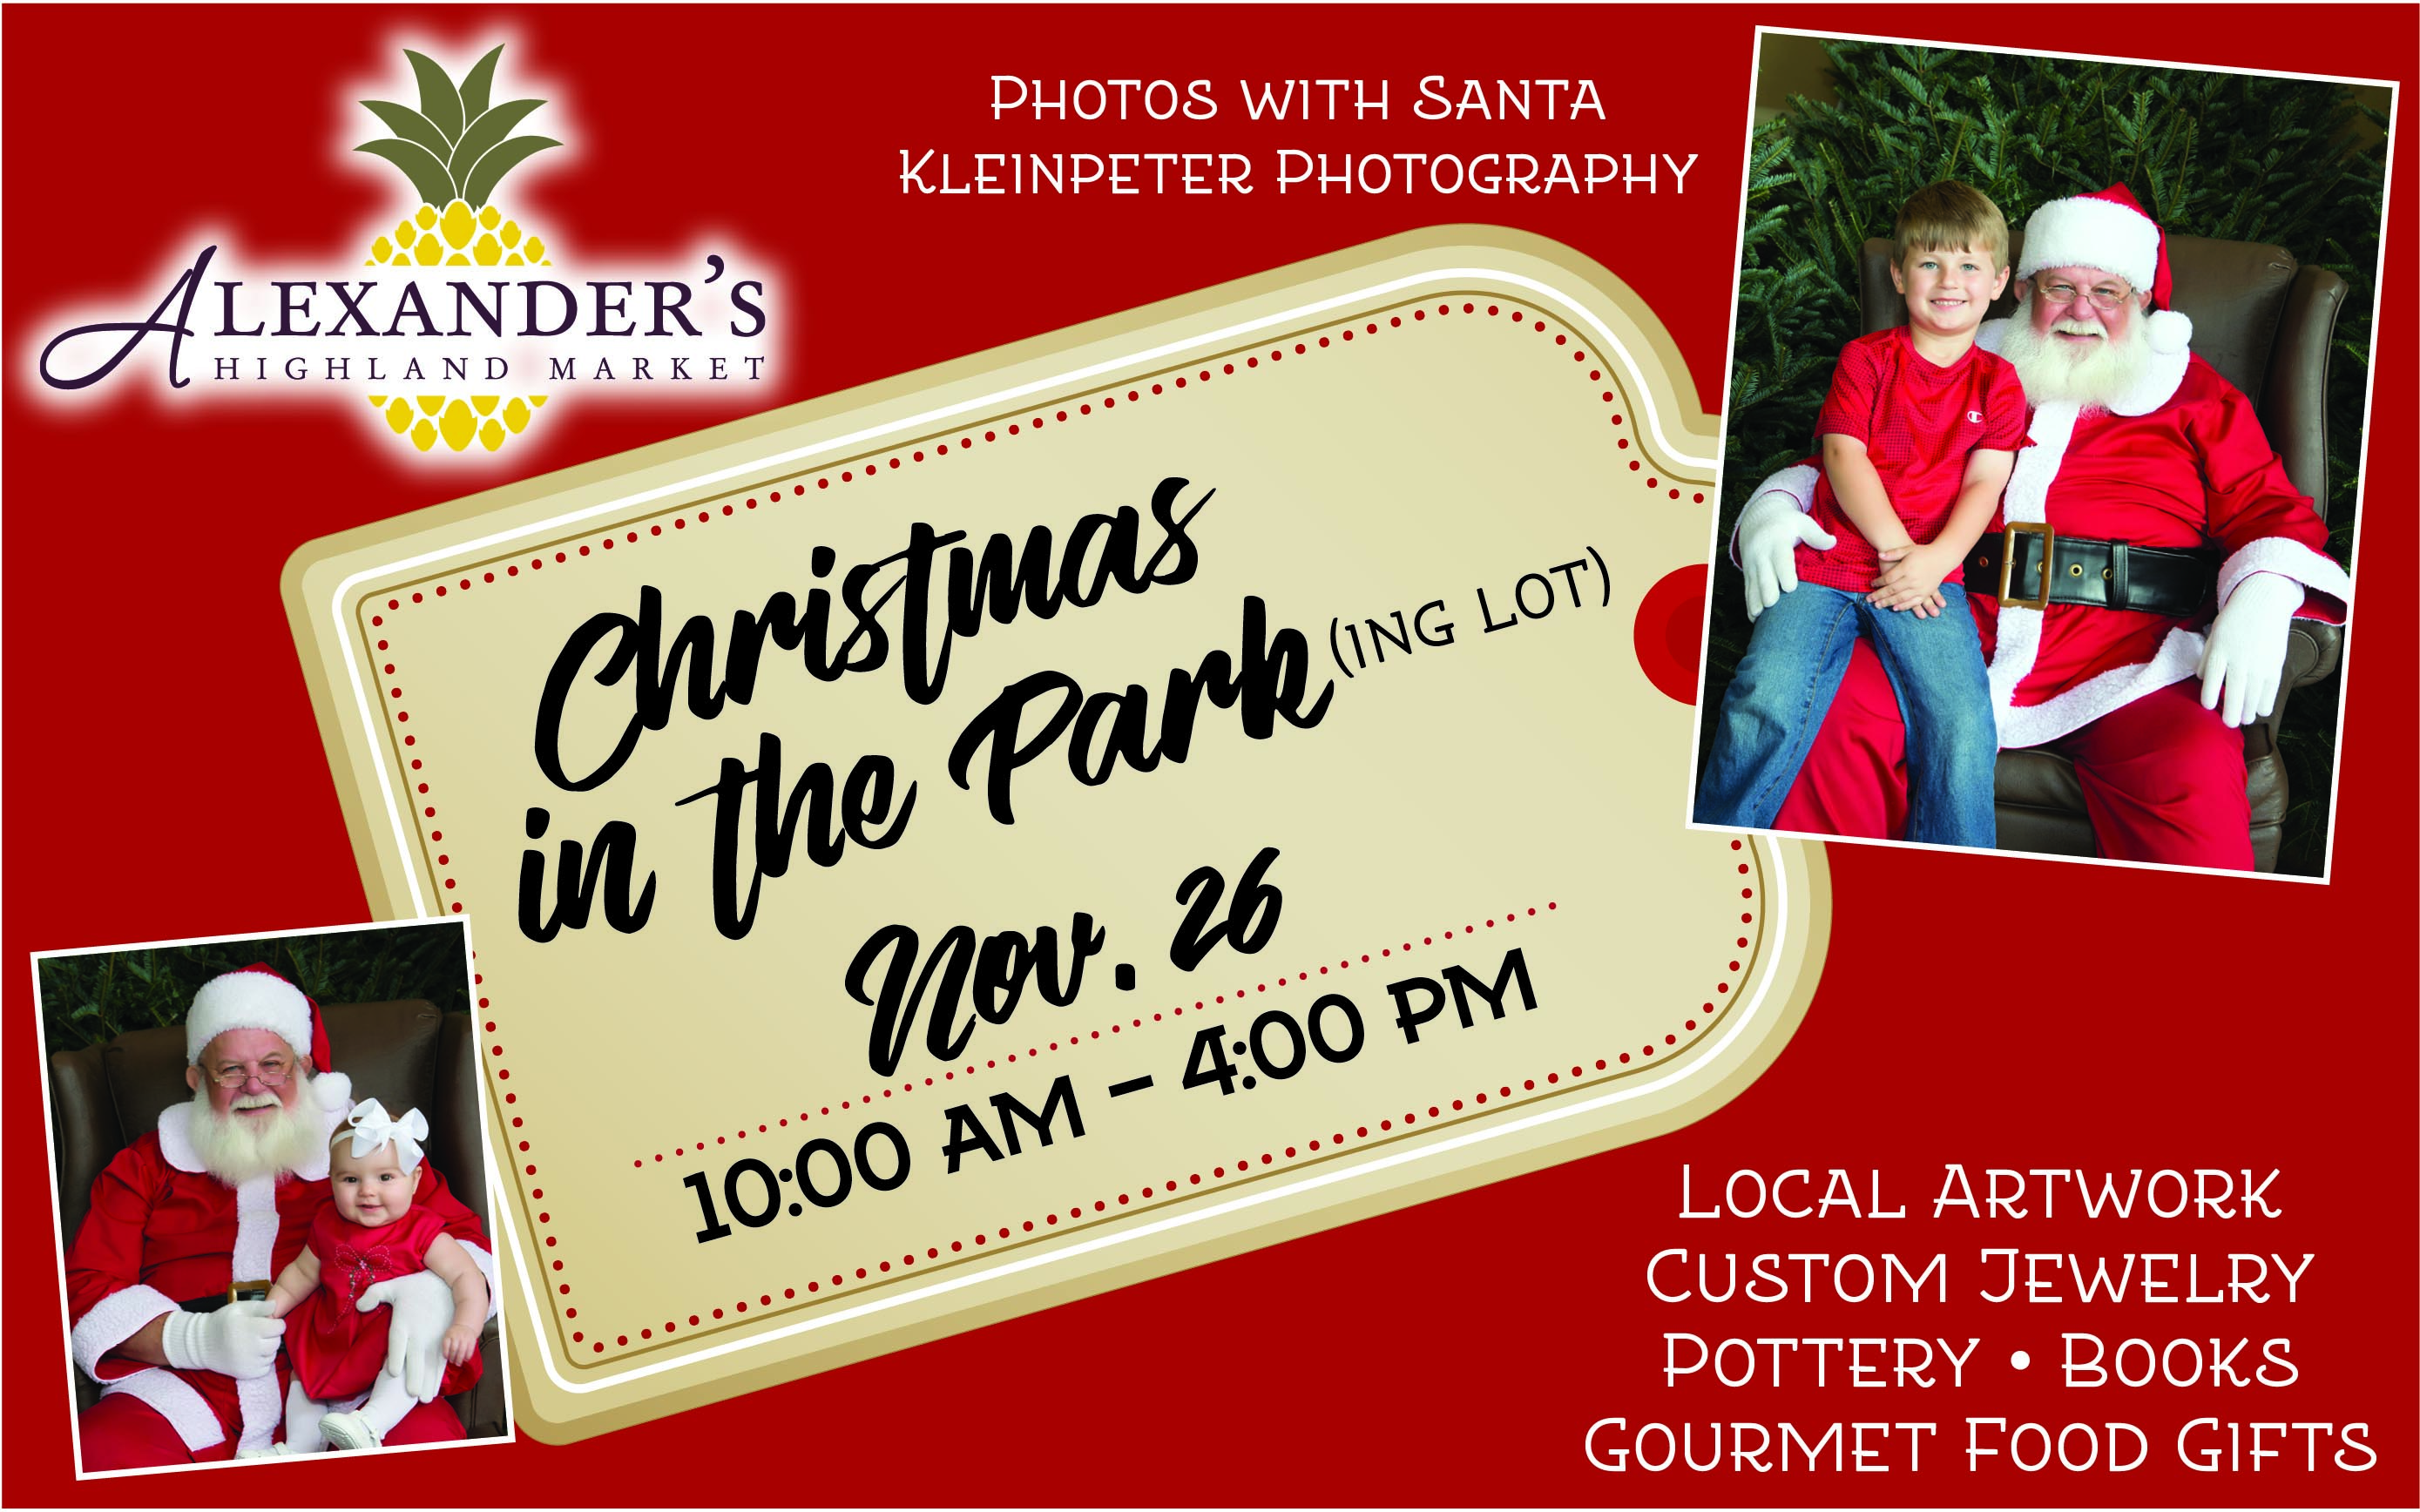 Christmas in the Park: Santa pics, unique, local gifts Nov. 26 - Alexander's Highland Market